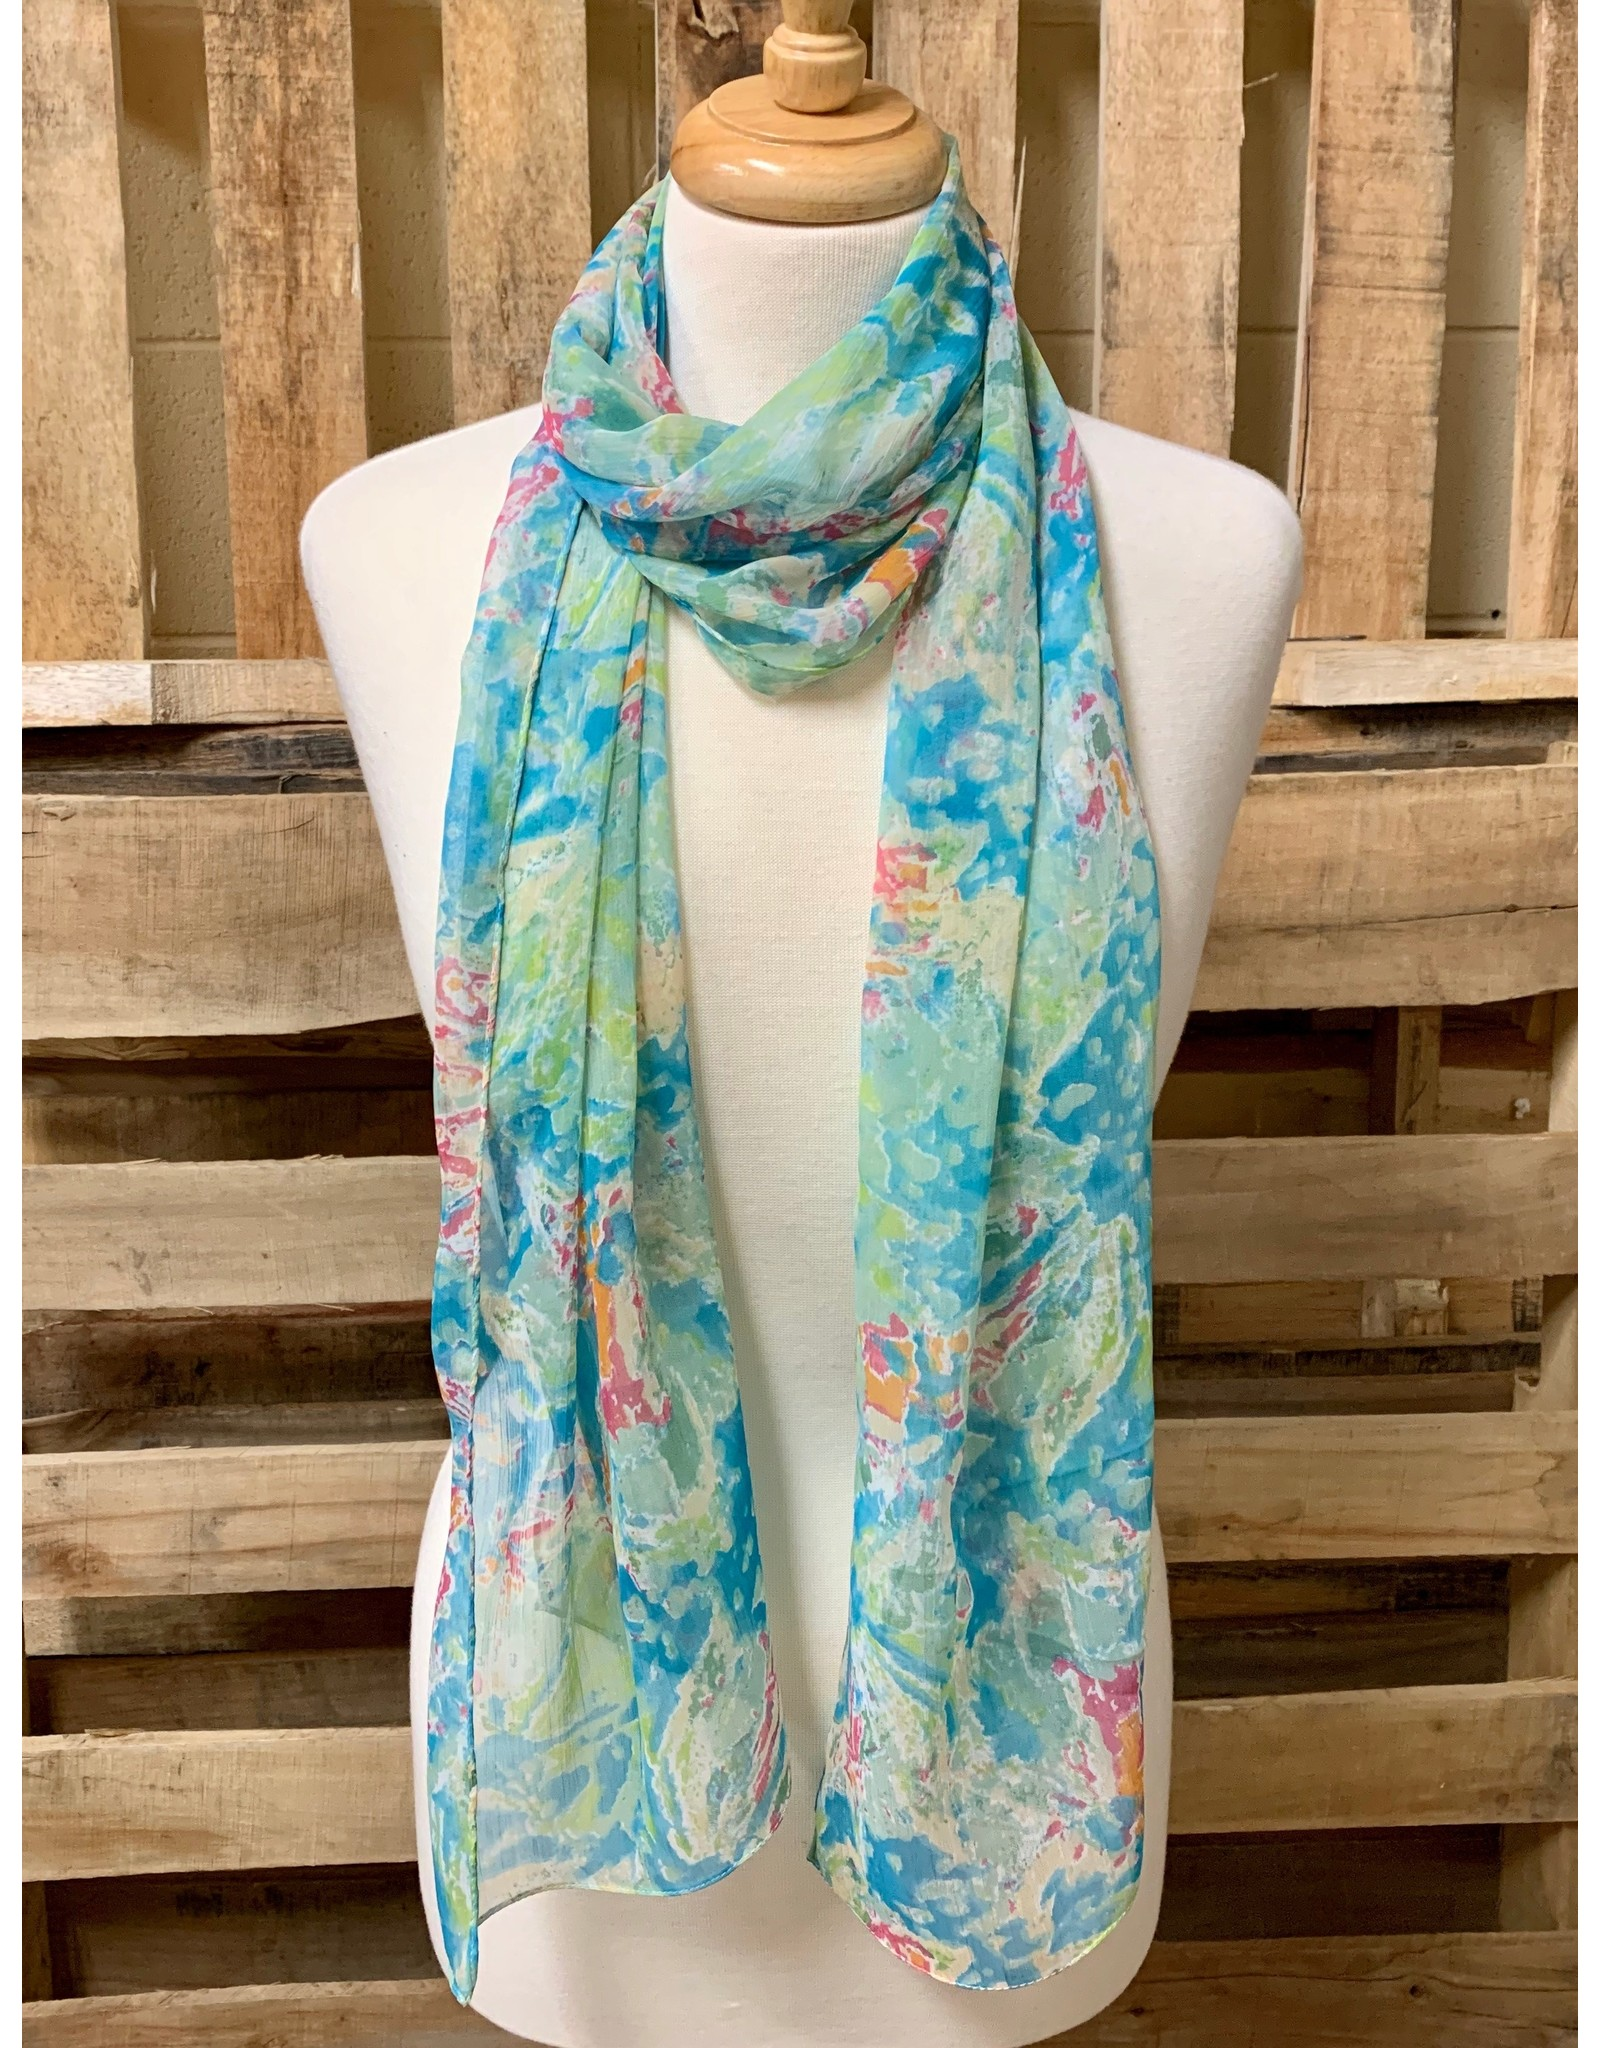 Ten Thousand Villages Make A Splash Scarf